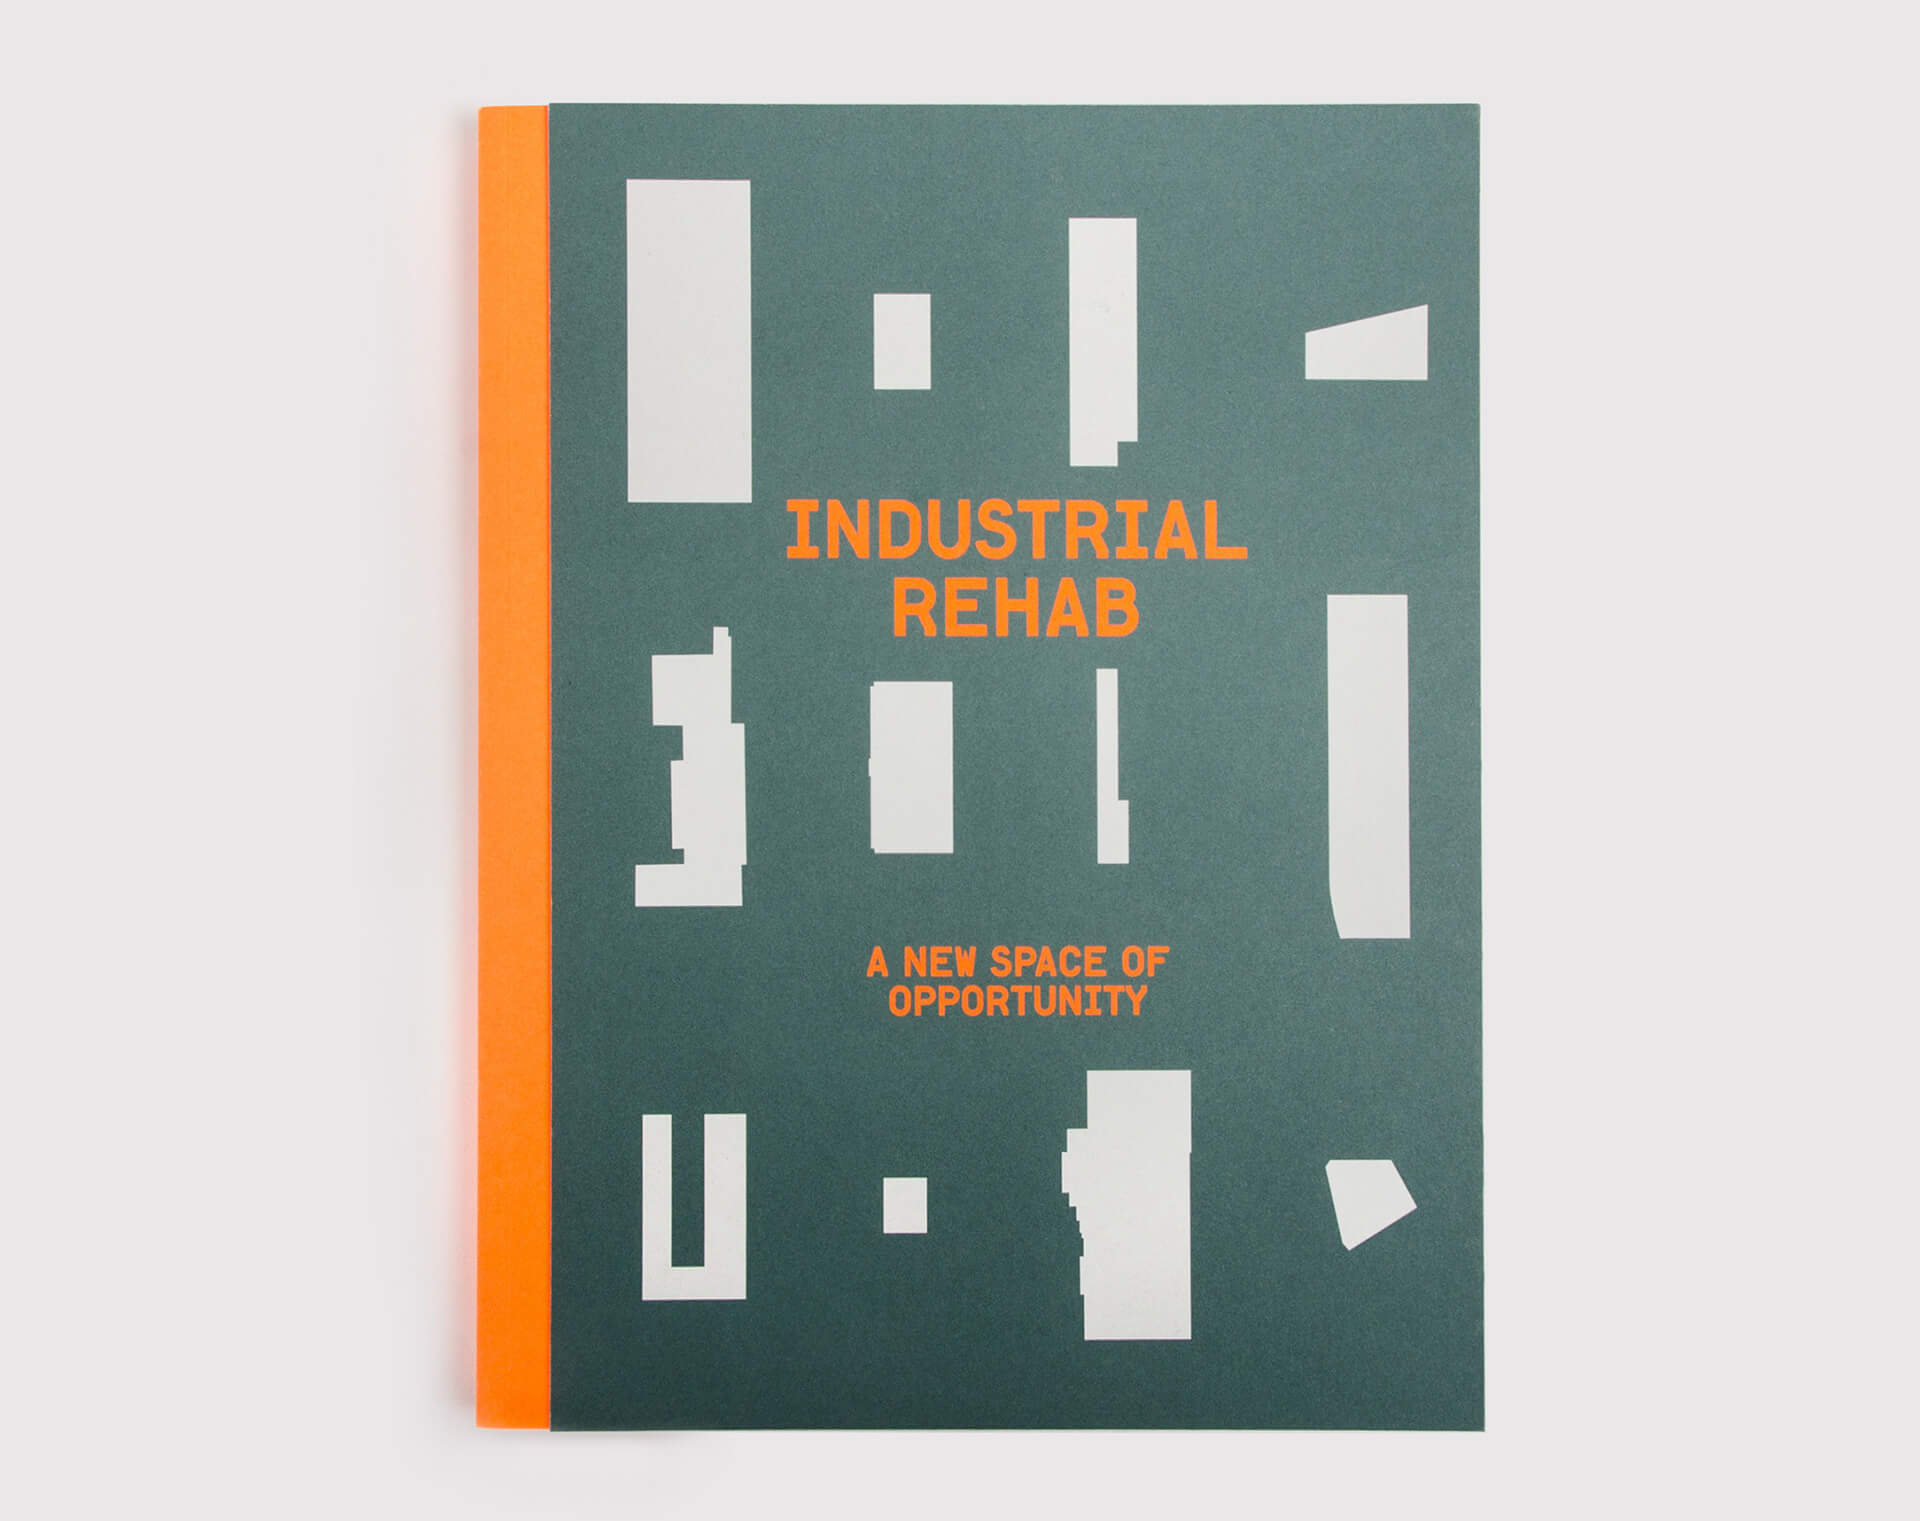 Industrial Rehab: A New Space of Opportunity, research conducted by Hawkins\Brown and JLL | Nicola Rutt | Design After COVID-19 | STIRworld